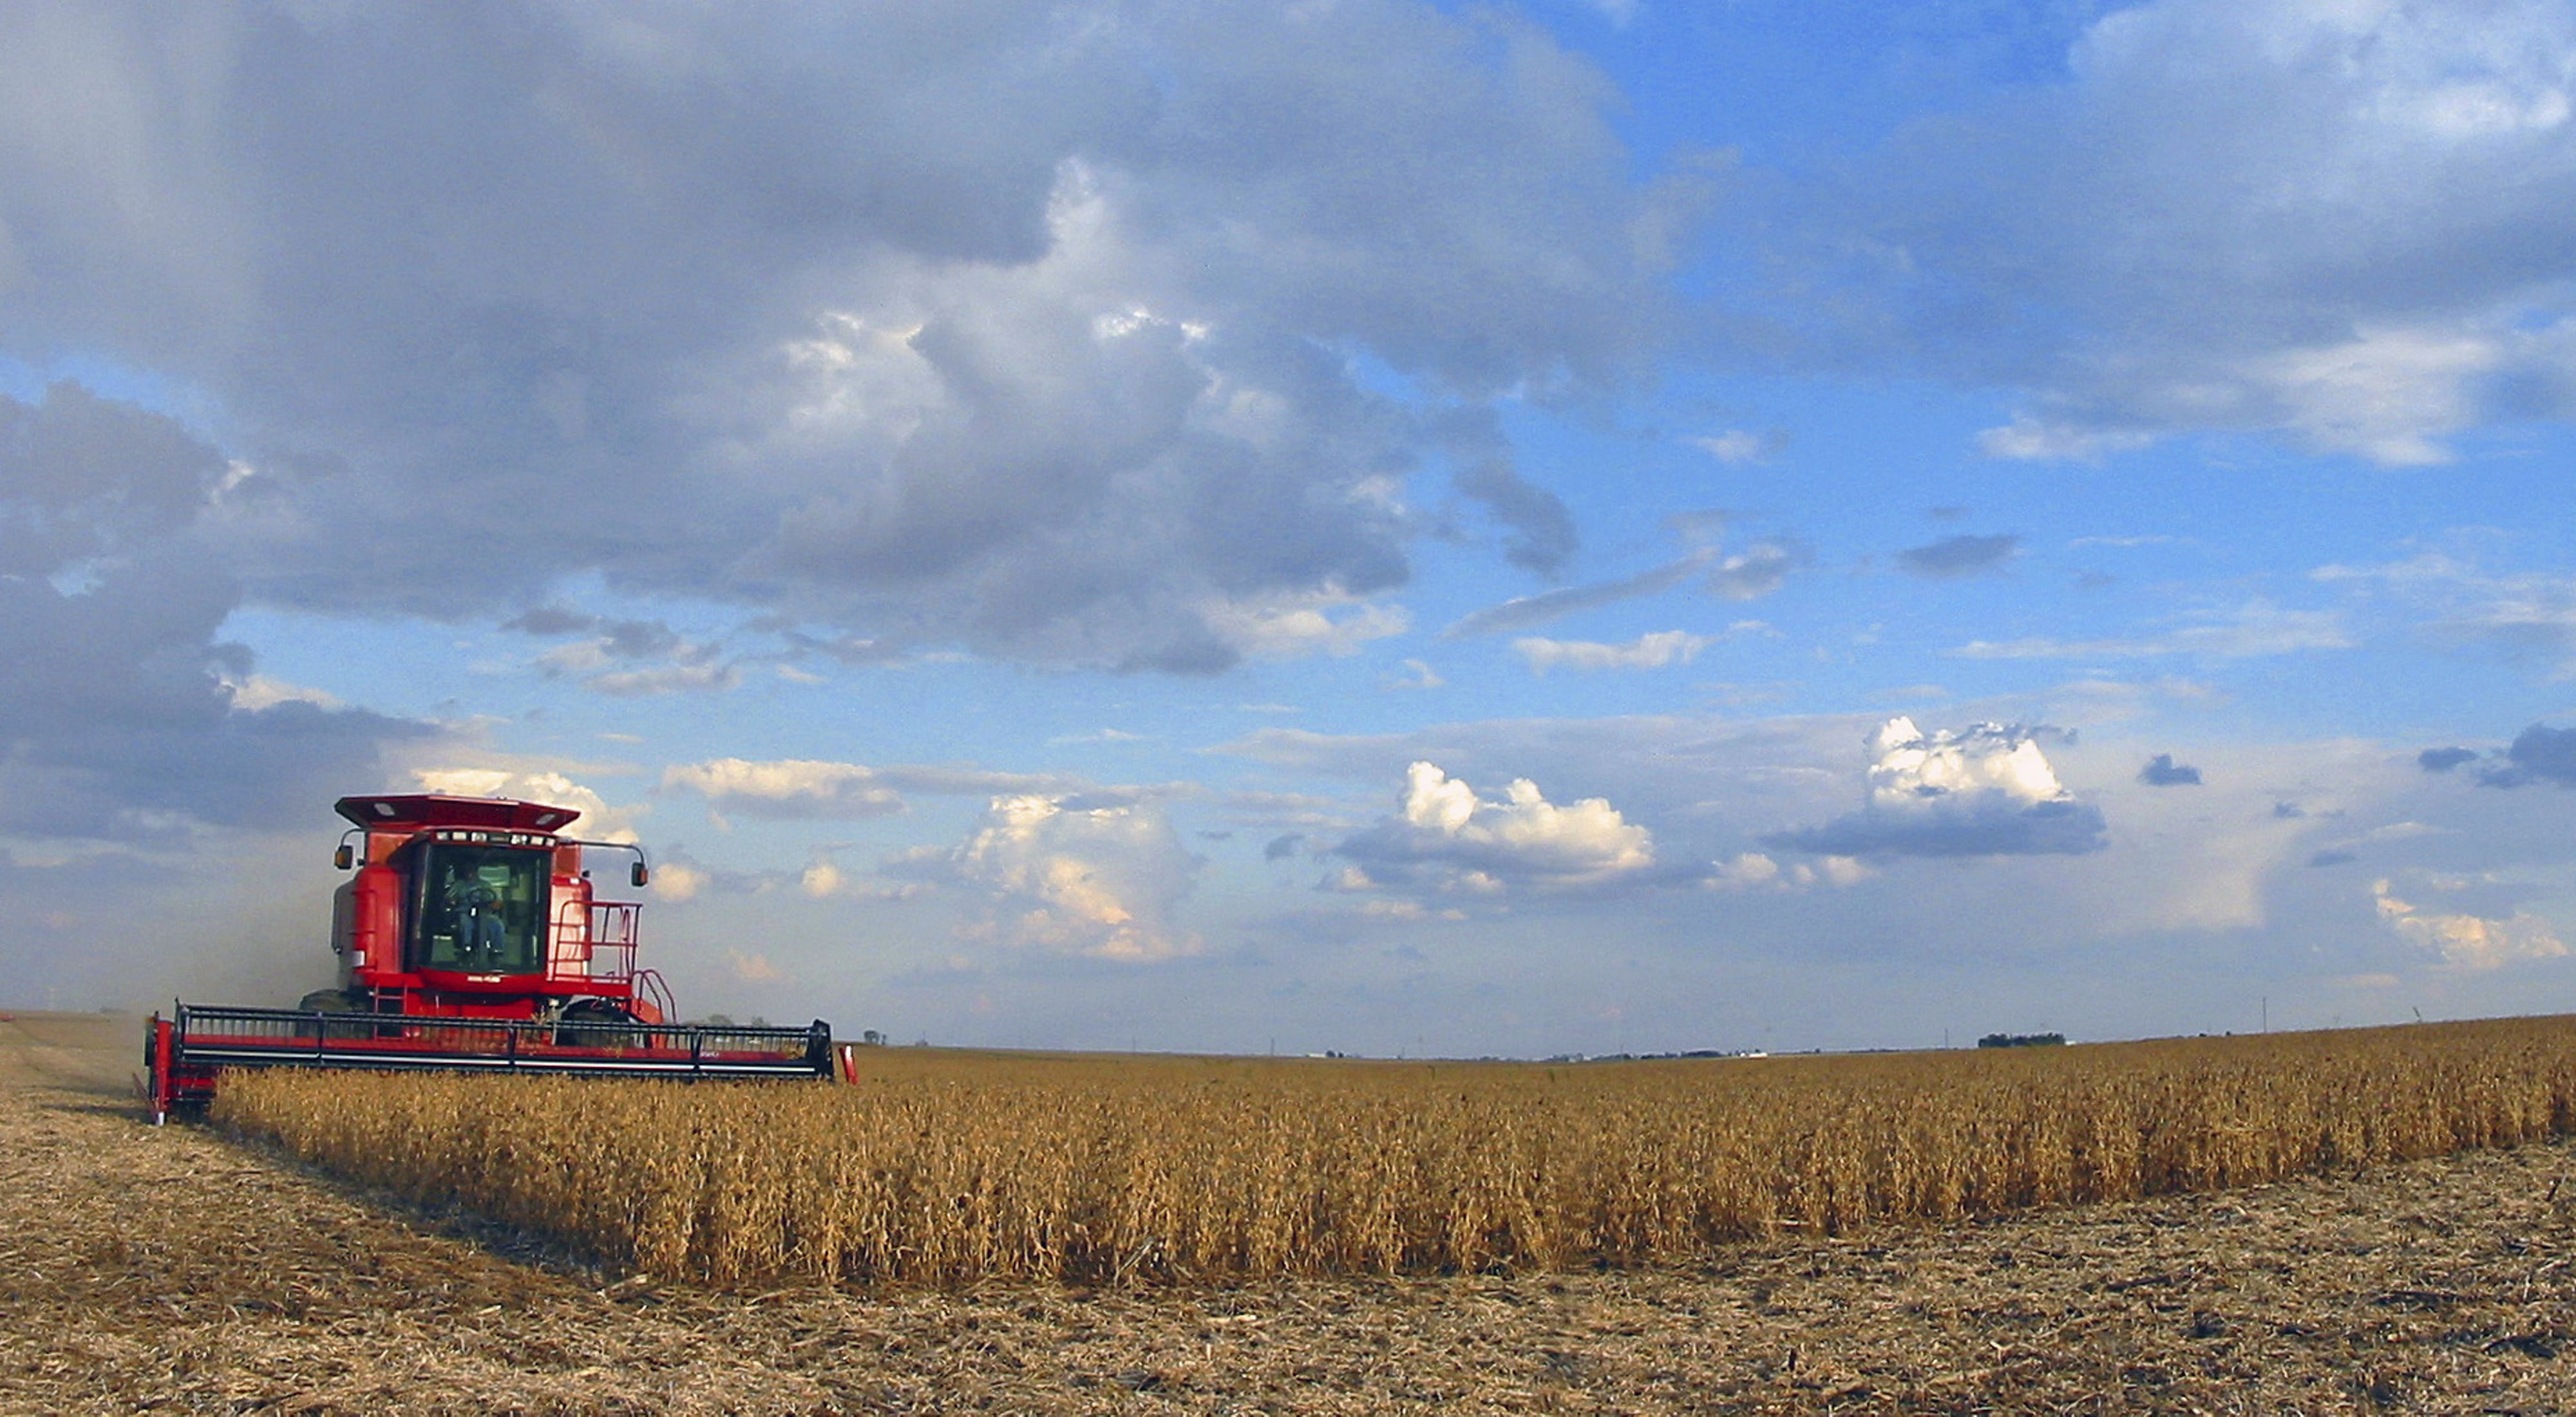 Photo of a combine harvesting wheat under a blue and cloudy sky.